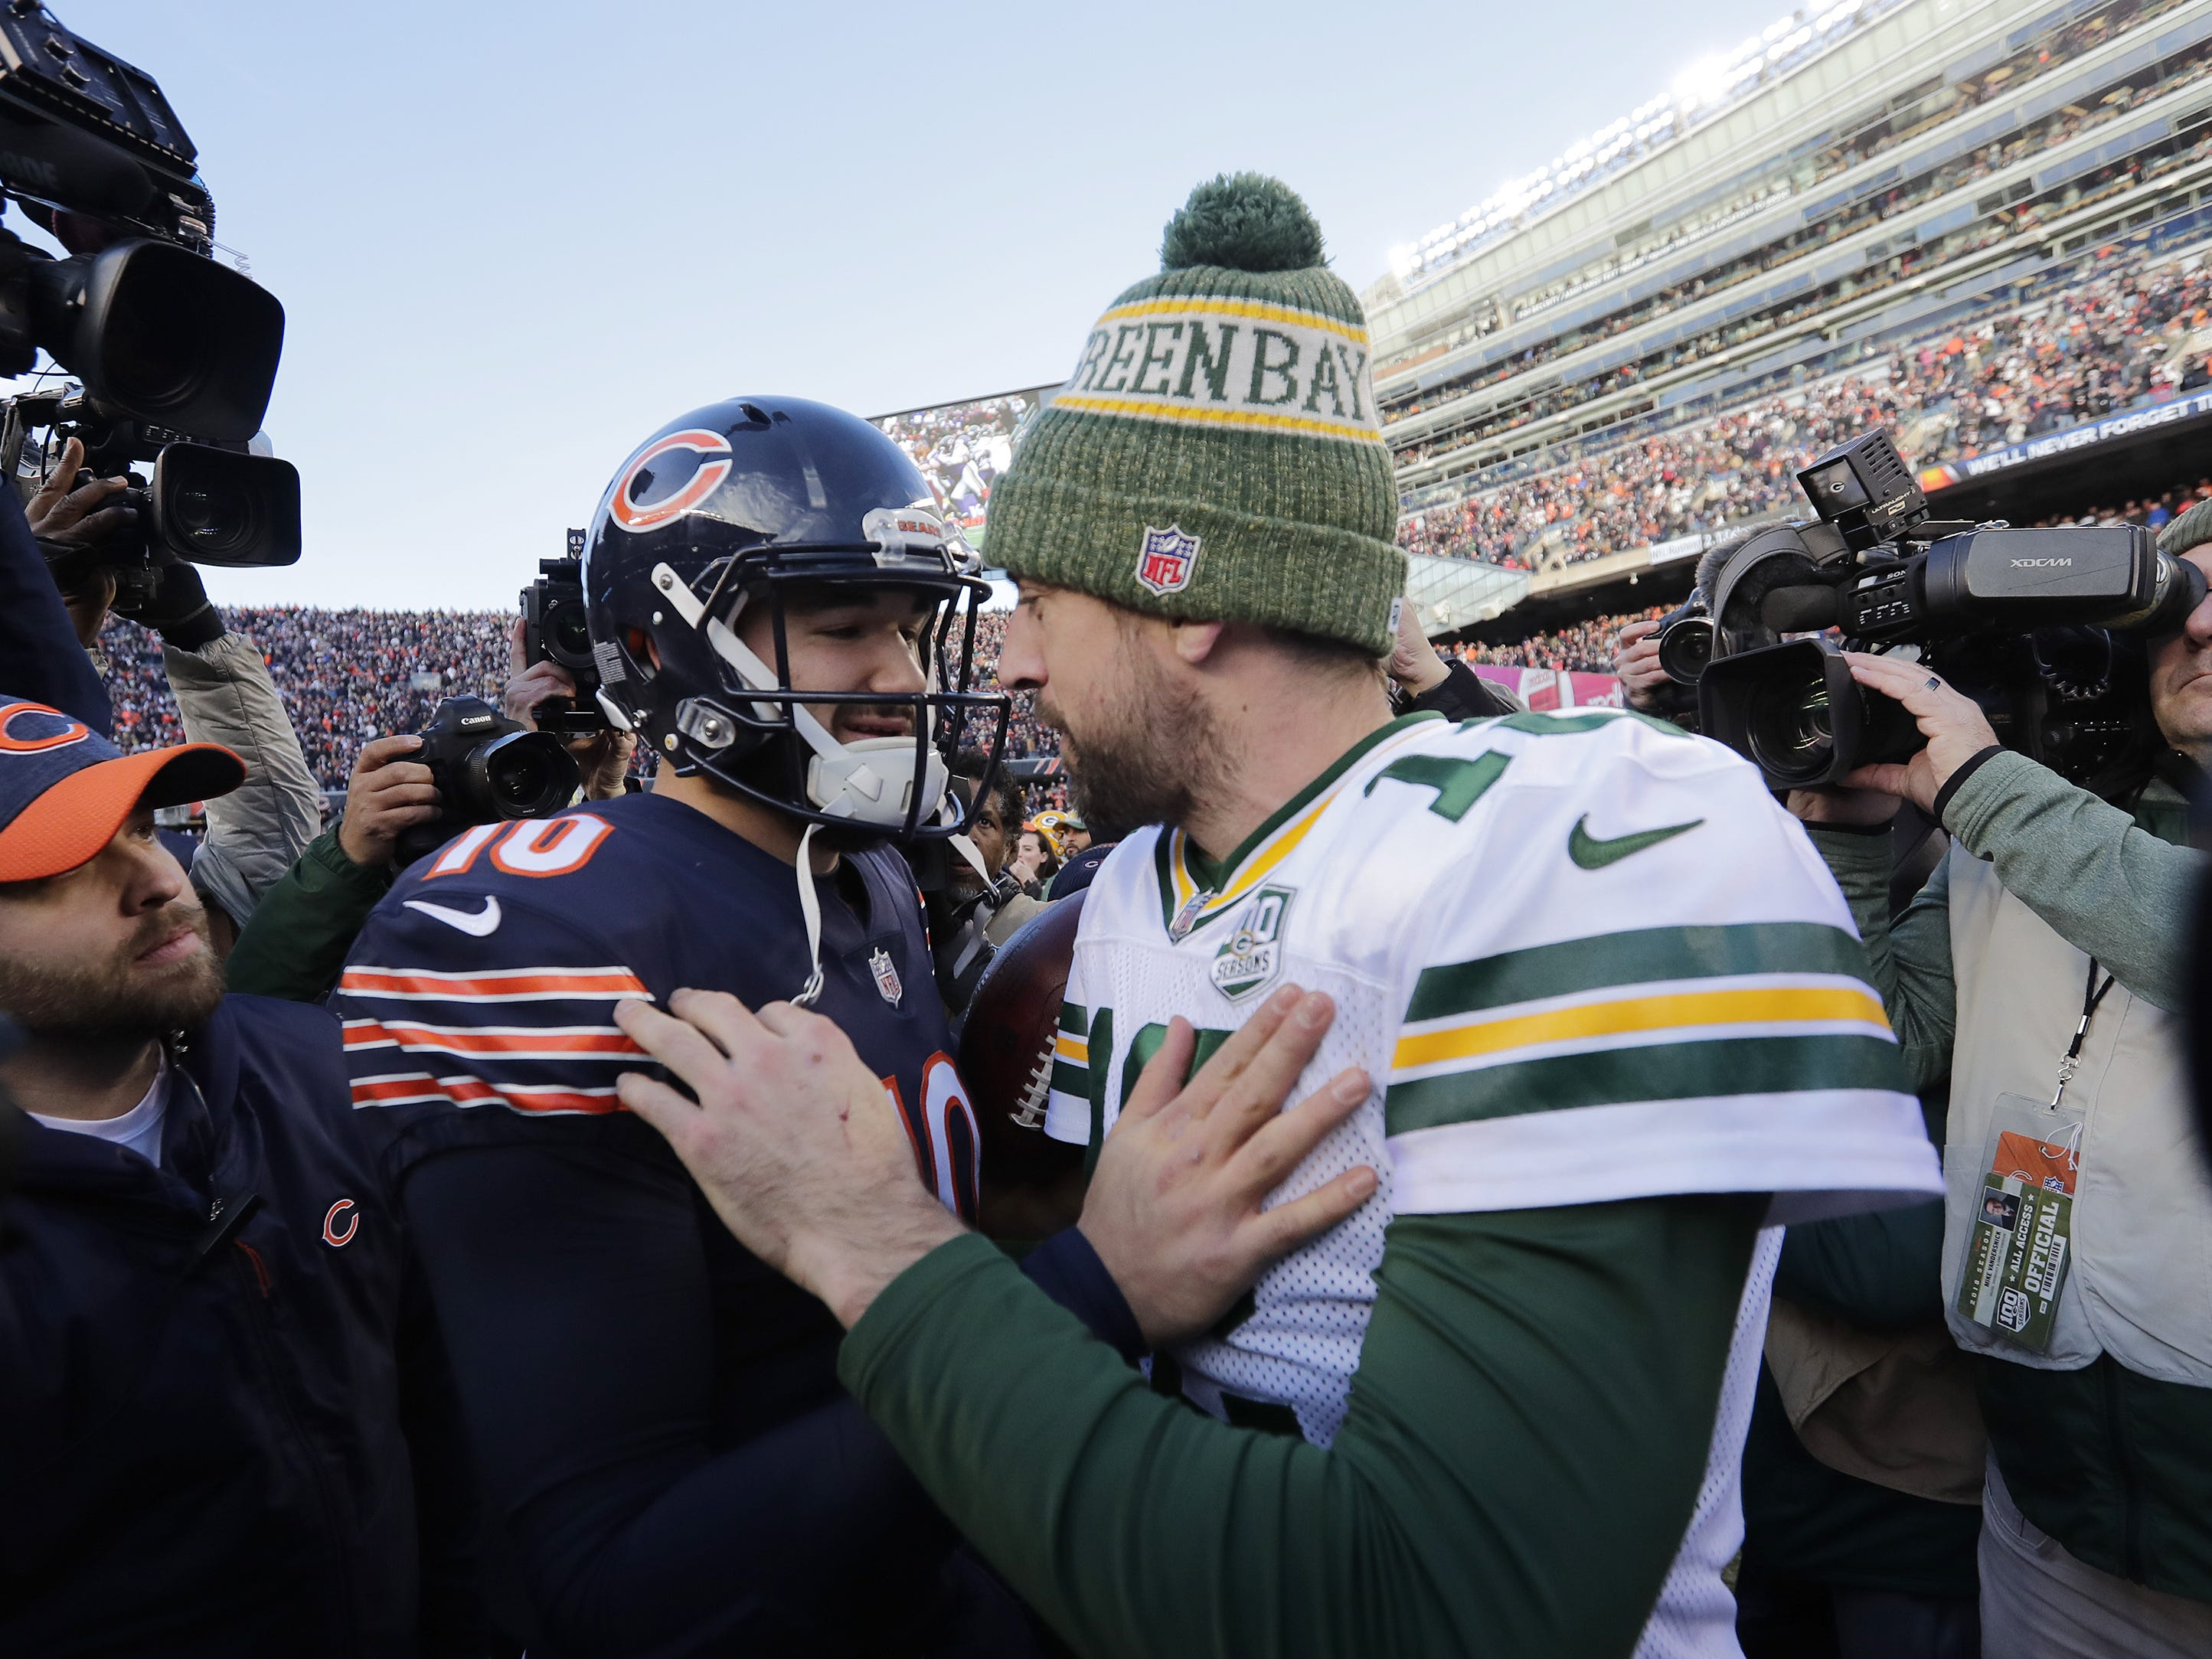 Green Bay Packers quarterback Aaron Rodgers (12) talks to Chicago Bears quarterback Mitchell Trubisky (10) after the Bears beat the Packers at Soldier Field on Sunday, December 16, 2018 in Chicago, Illinois. Adam Wesley/USA TODAY NETWORK-Wis